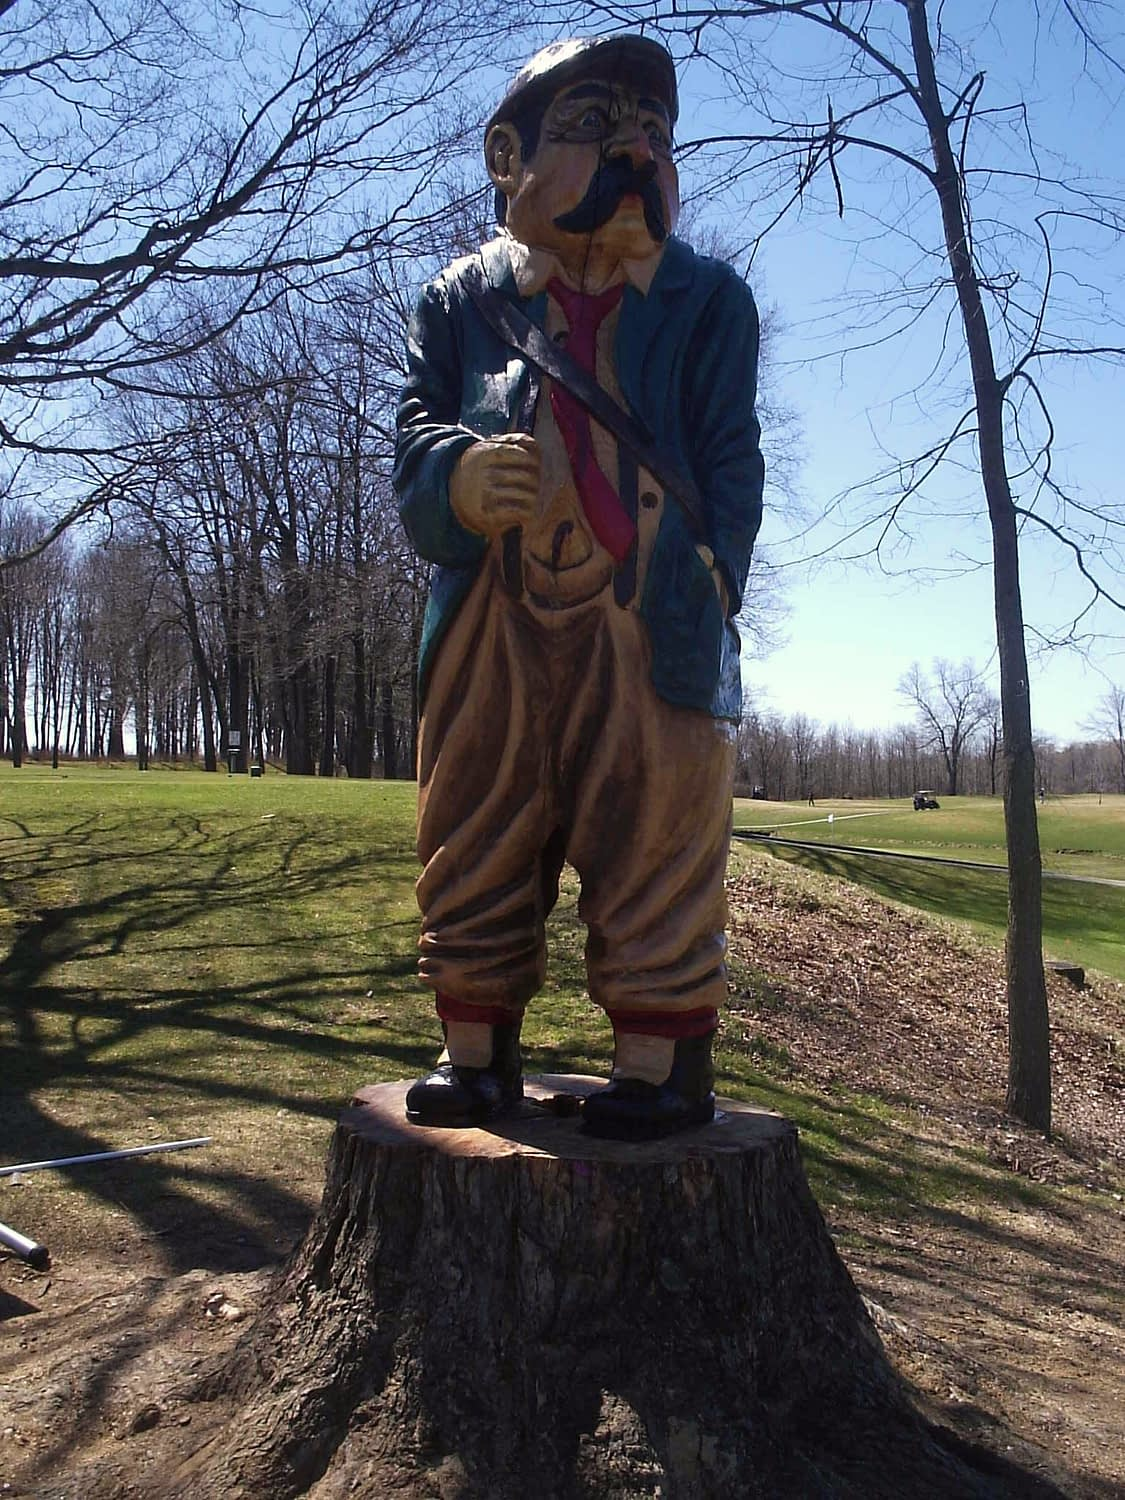 Carving, Golf, Golf Course